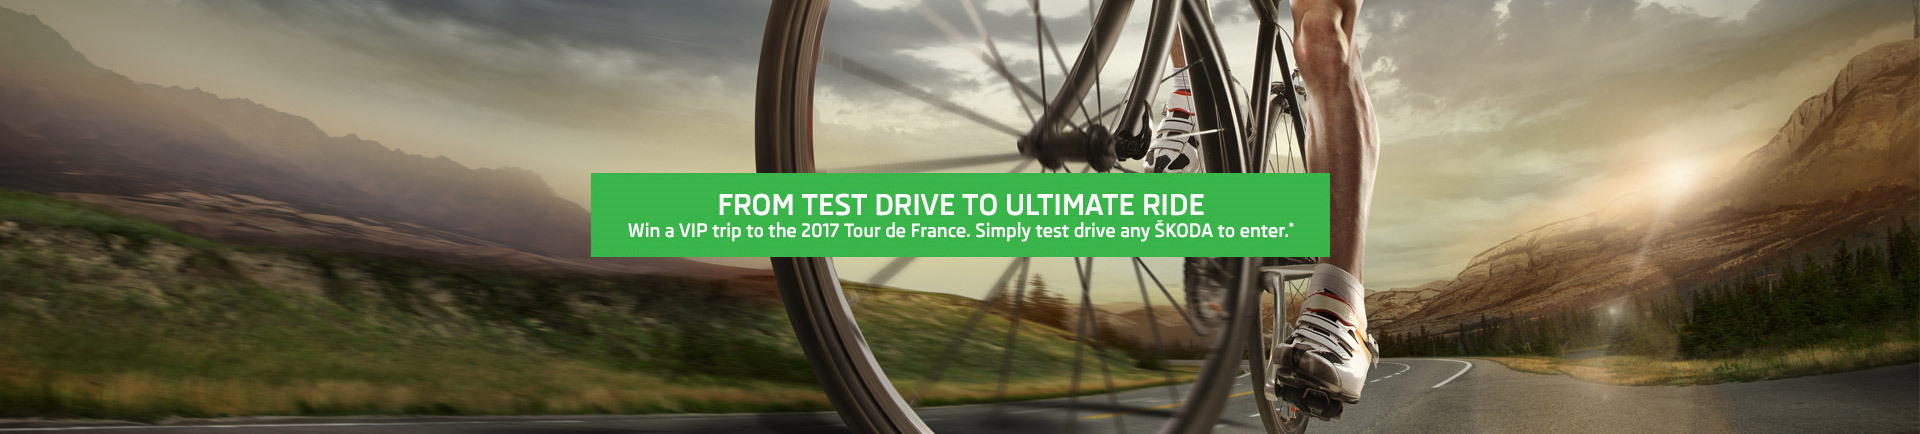 Win VIP trip to 2017 Tour de France by test drive any Skoda Skoda.Conditions Ap